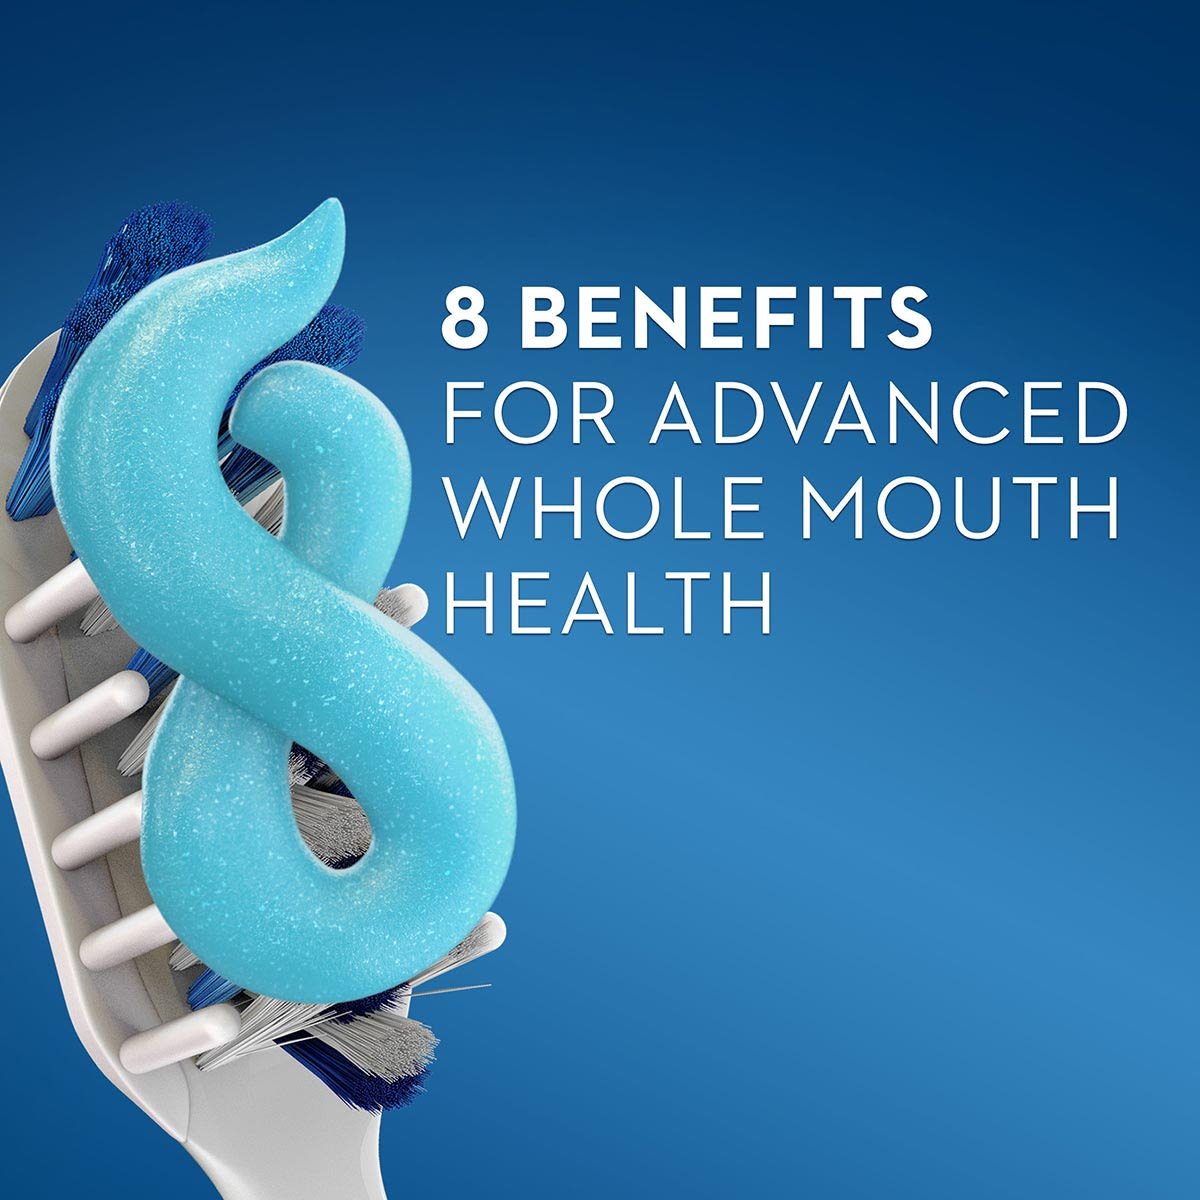 Crest - Eight benefits for advanced whole mouth health